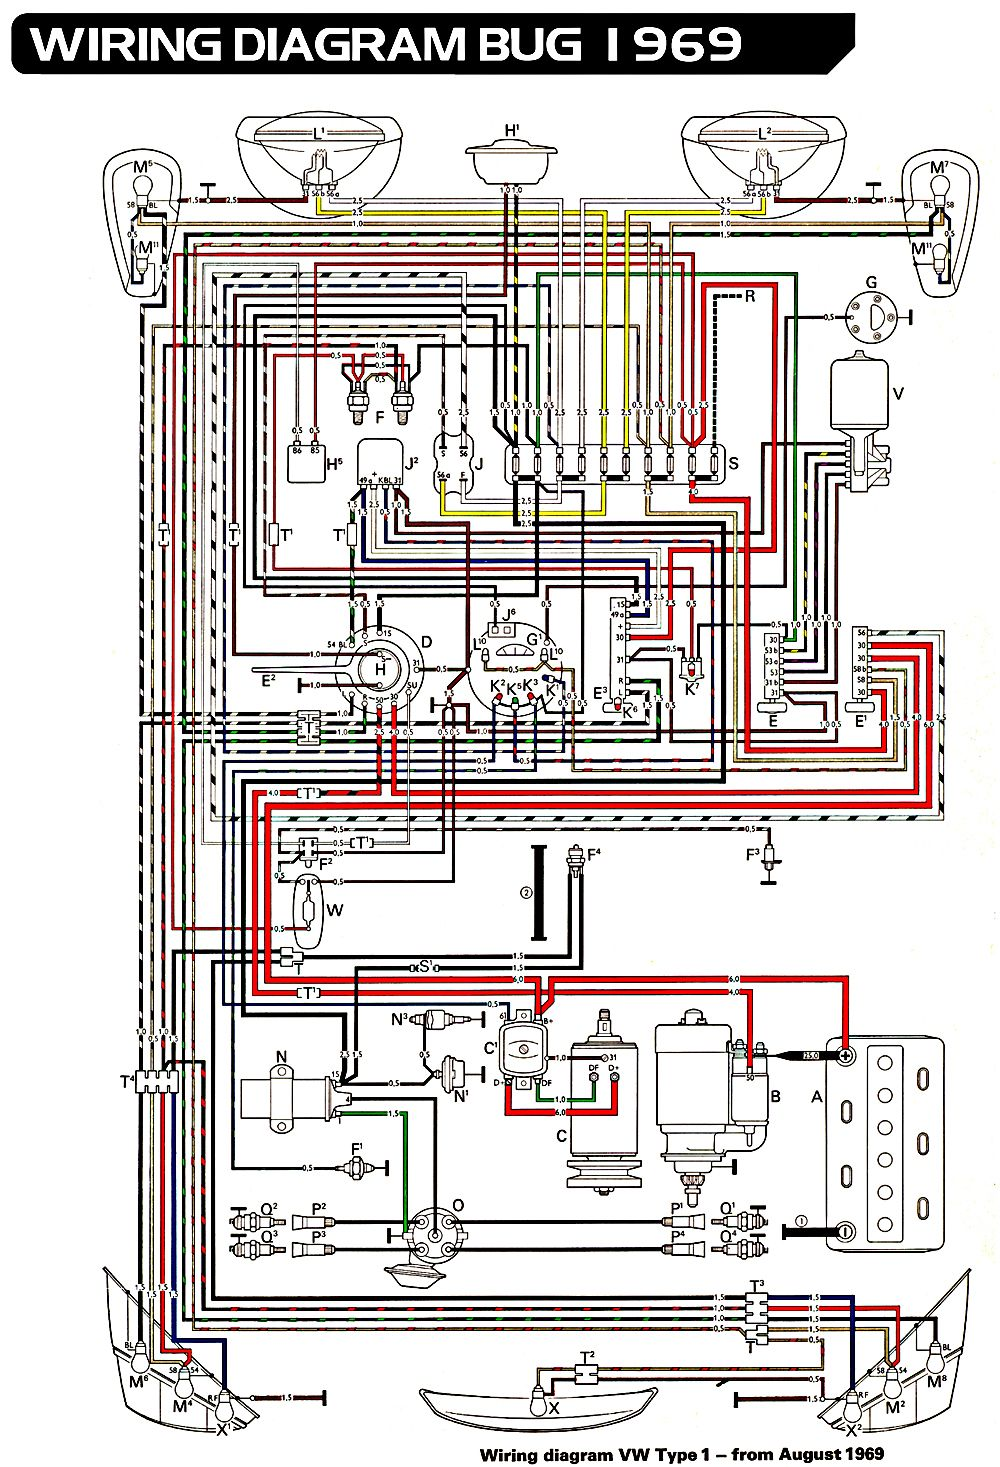 6d75c15875479254f26a32a8499d9044 volkswagen beetle wiring diagram 1966 vw beetle wiring 1974 super beetle wiring diagram at soozxer.org